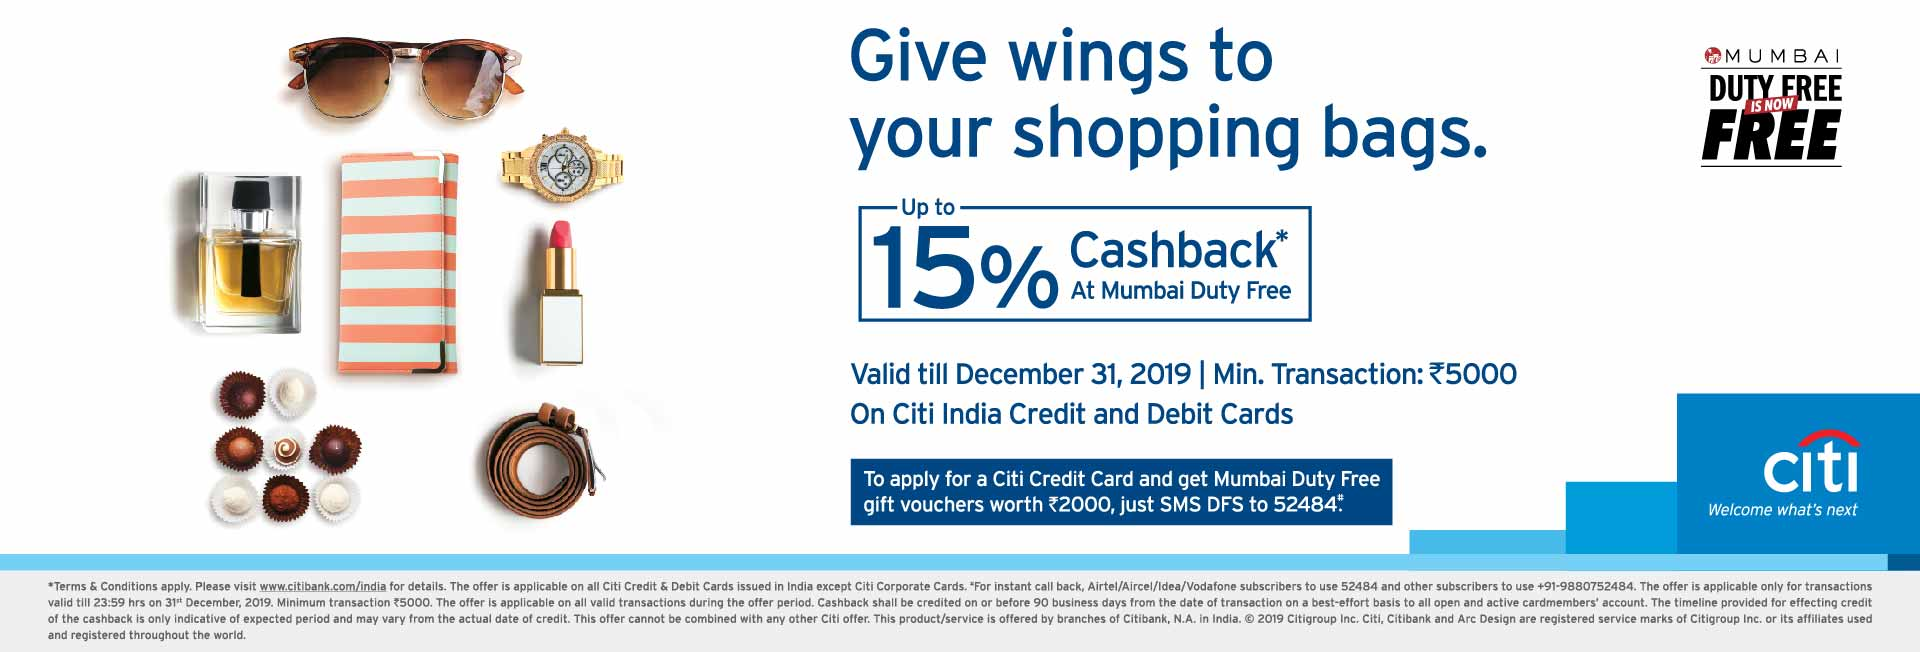 Mumbai Dutyfree | Shop Duty Free Products at your leisure